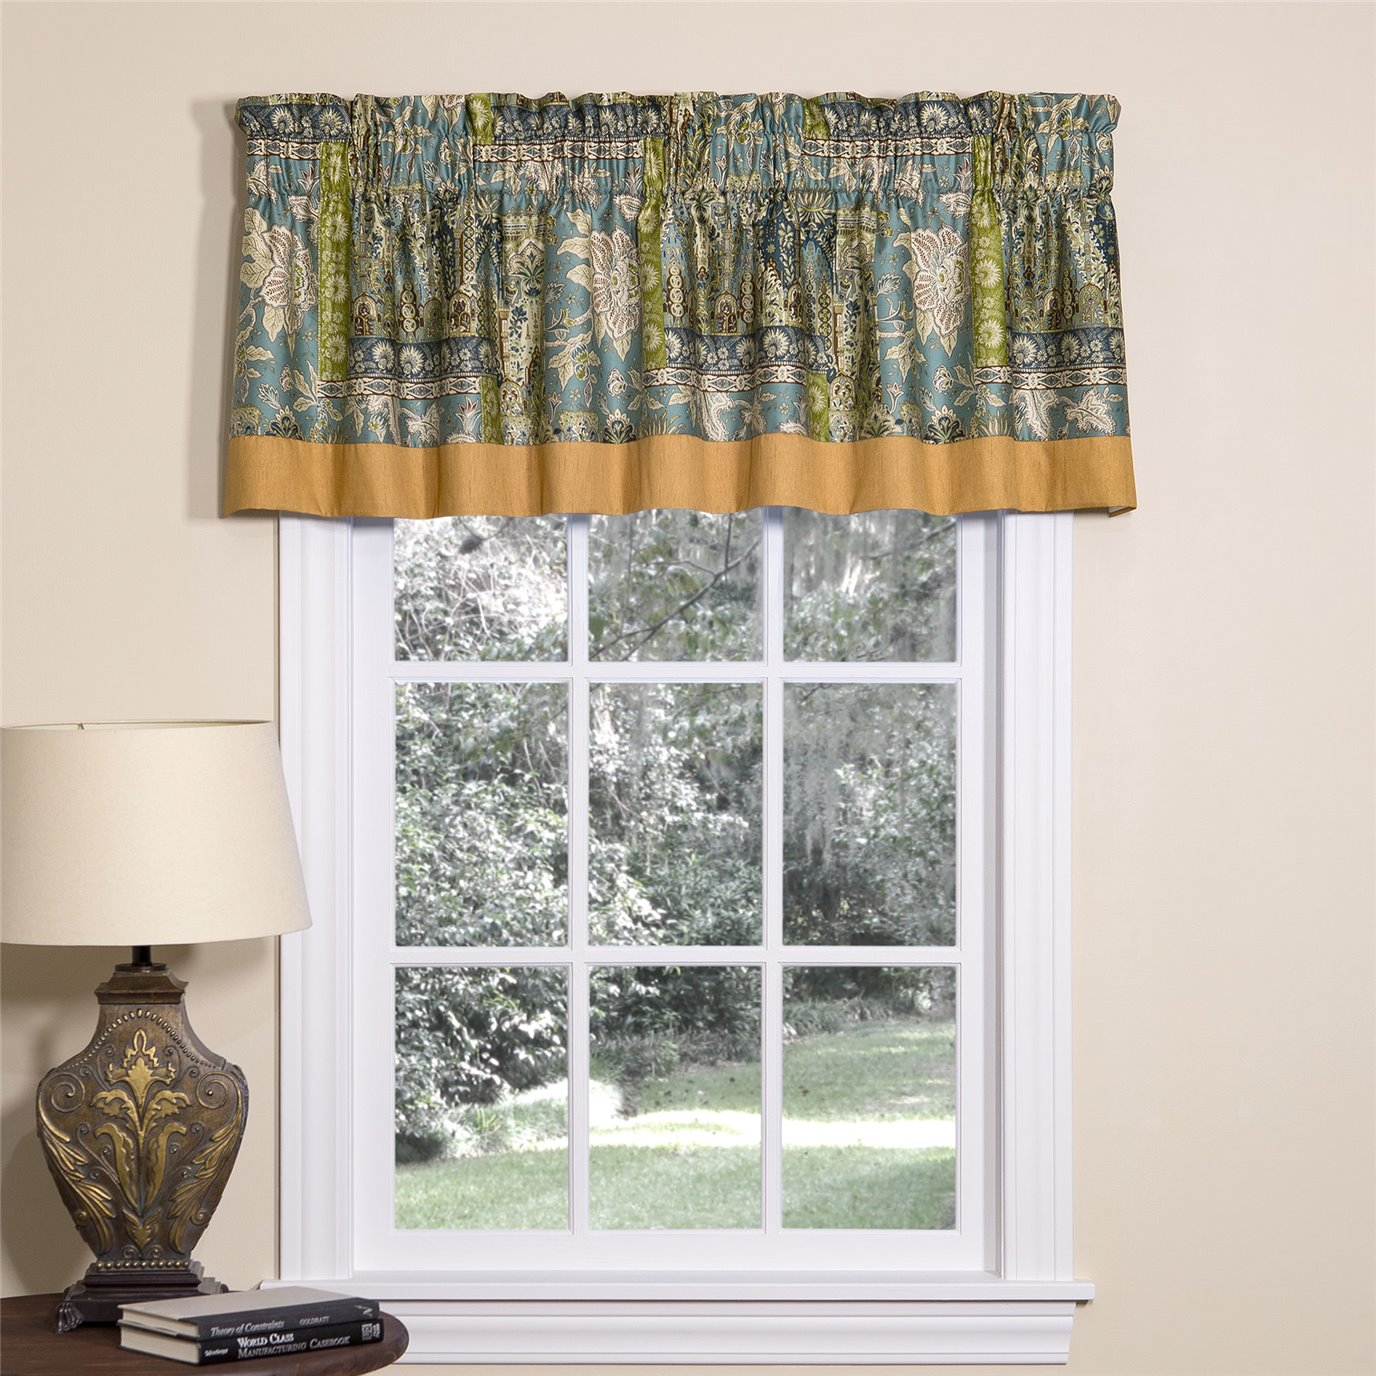 Tangier Tailored Valance with Band